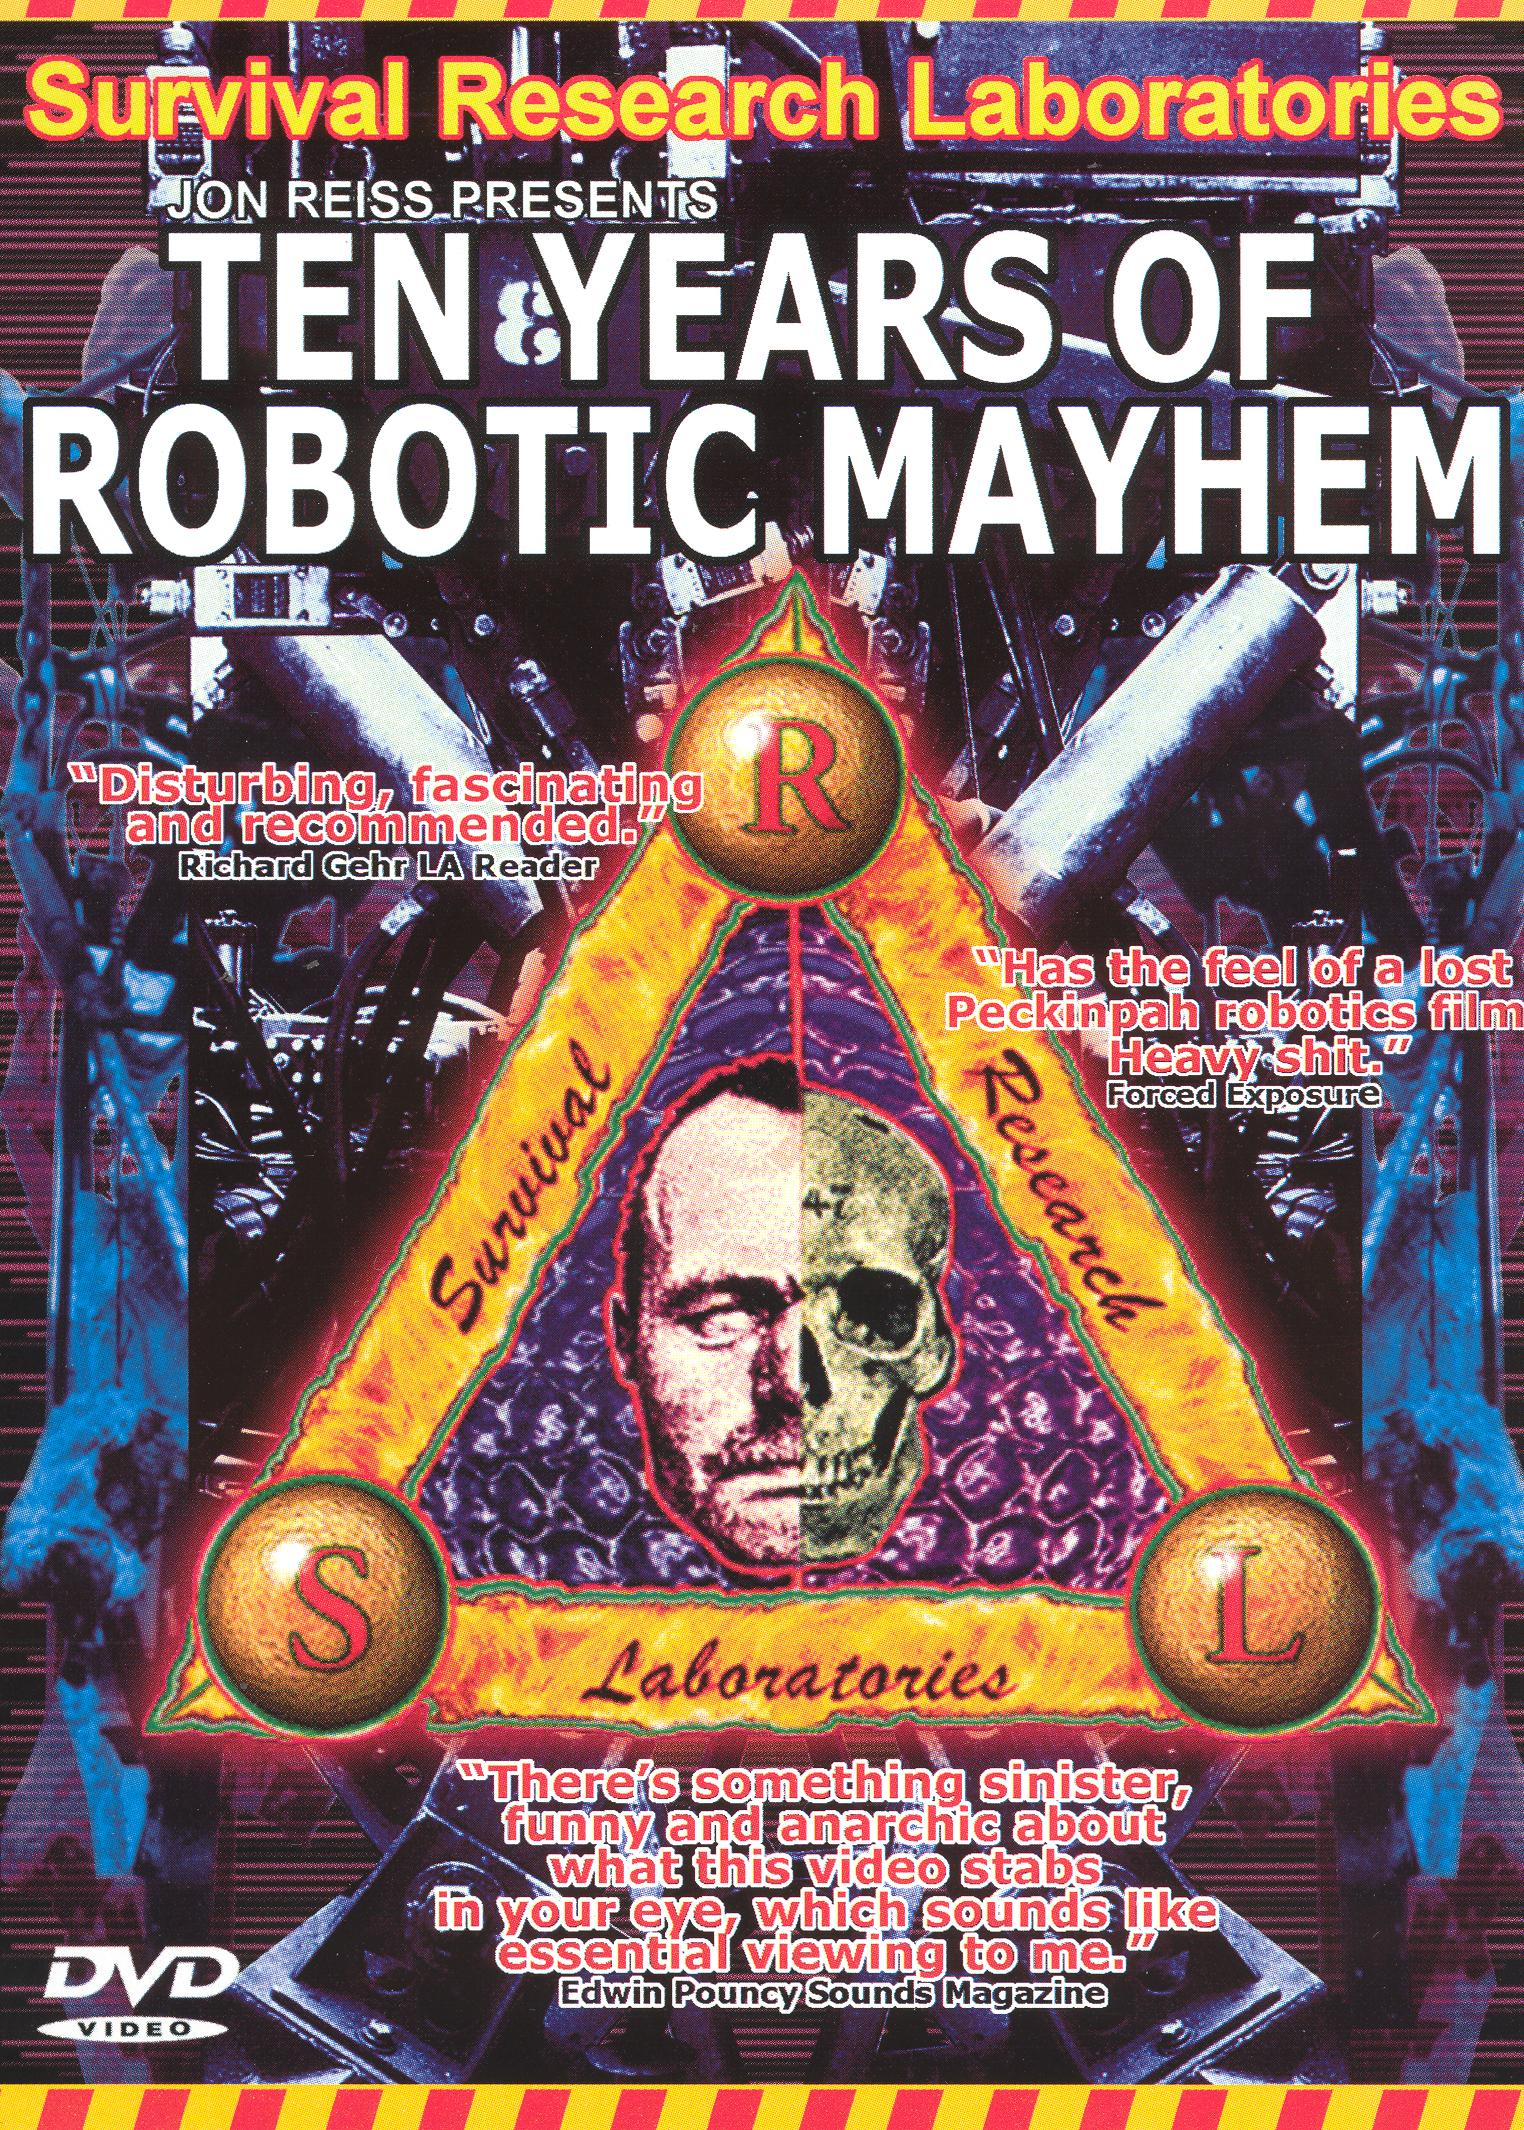 Survival Research Laboratories: Ten Years of Robotic Mayhem